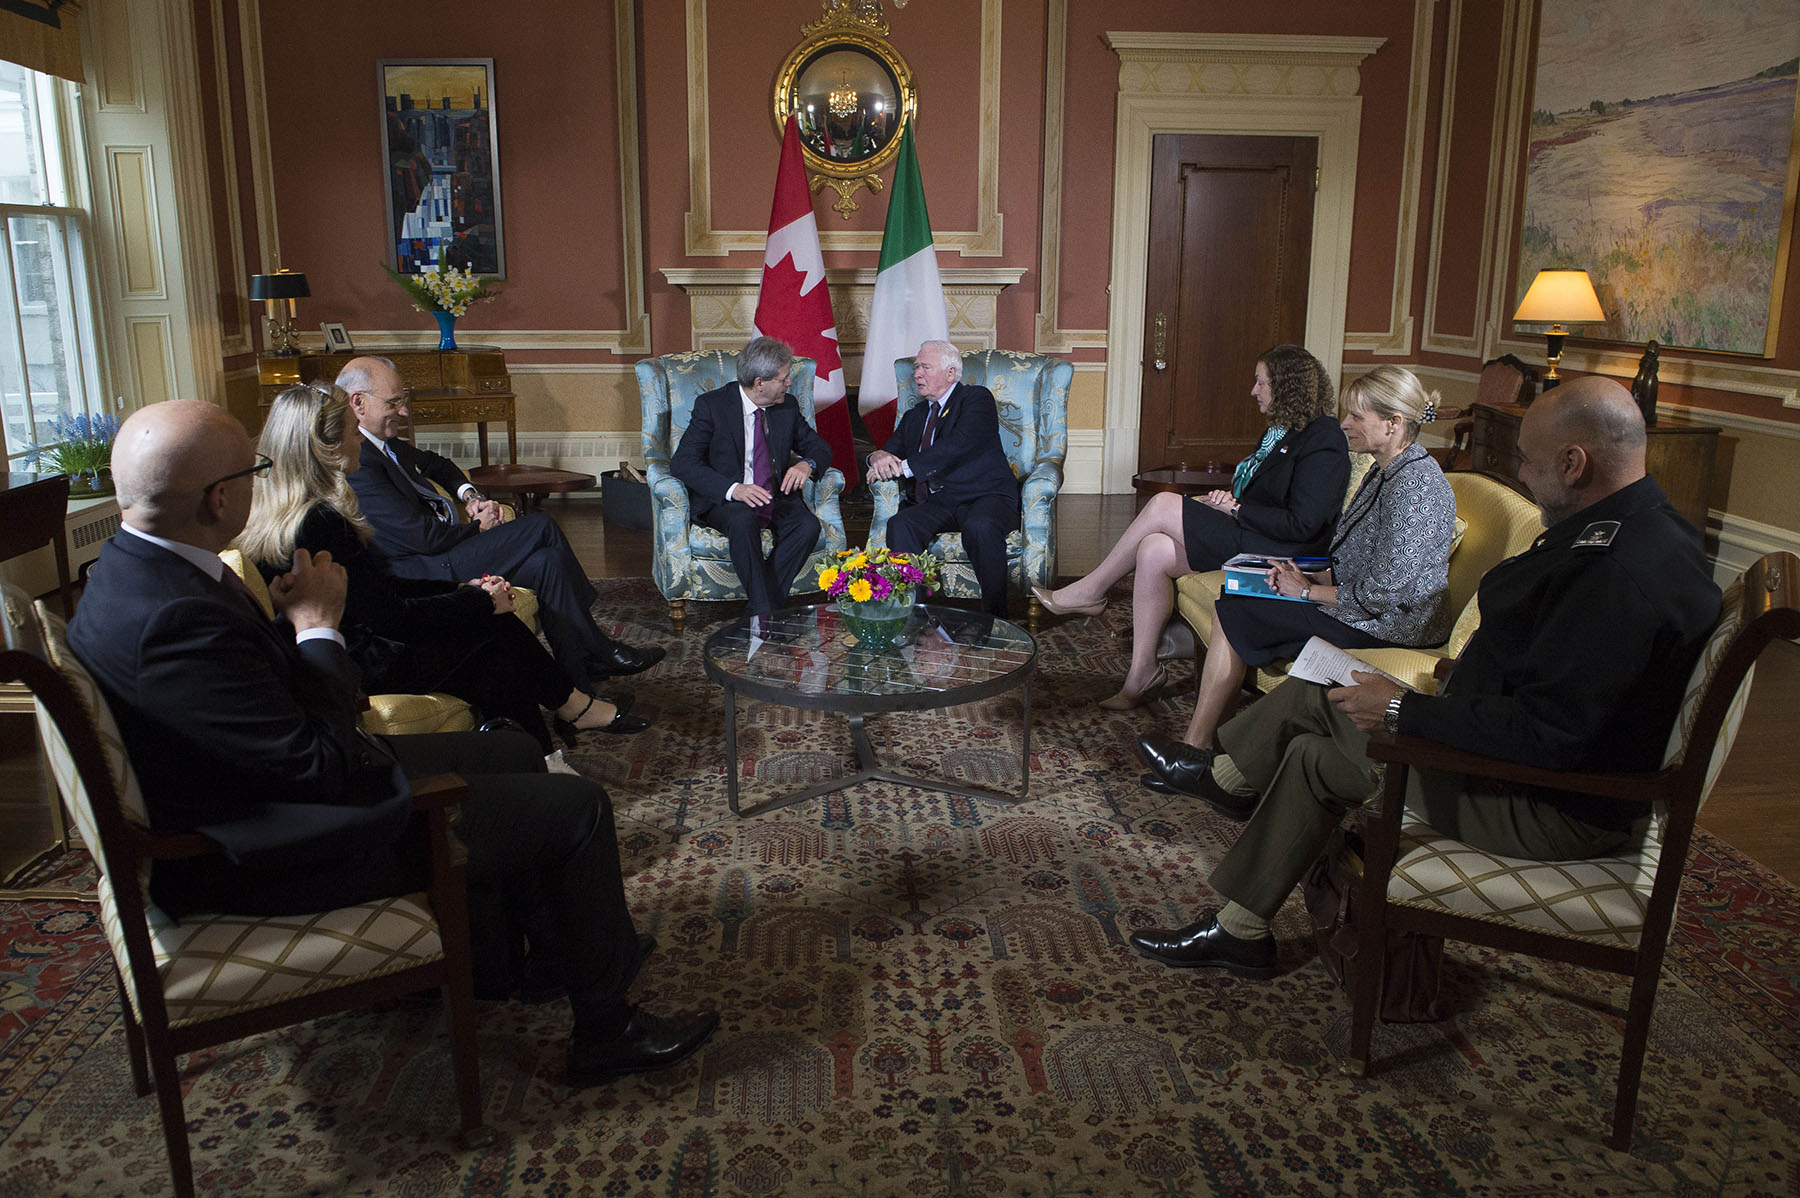 Canada and Italy have a strong commercial relationship, historic people-to-people ties and a longstanding academic relationship, reinforced by inter-university and private-public academic agreements.